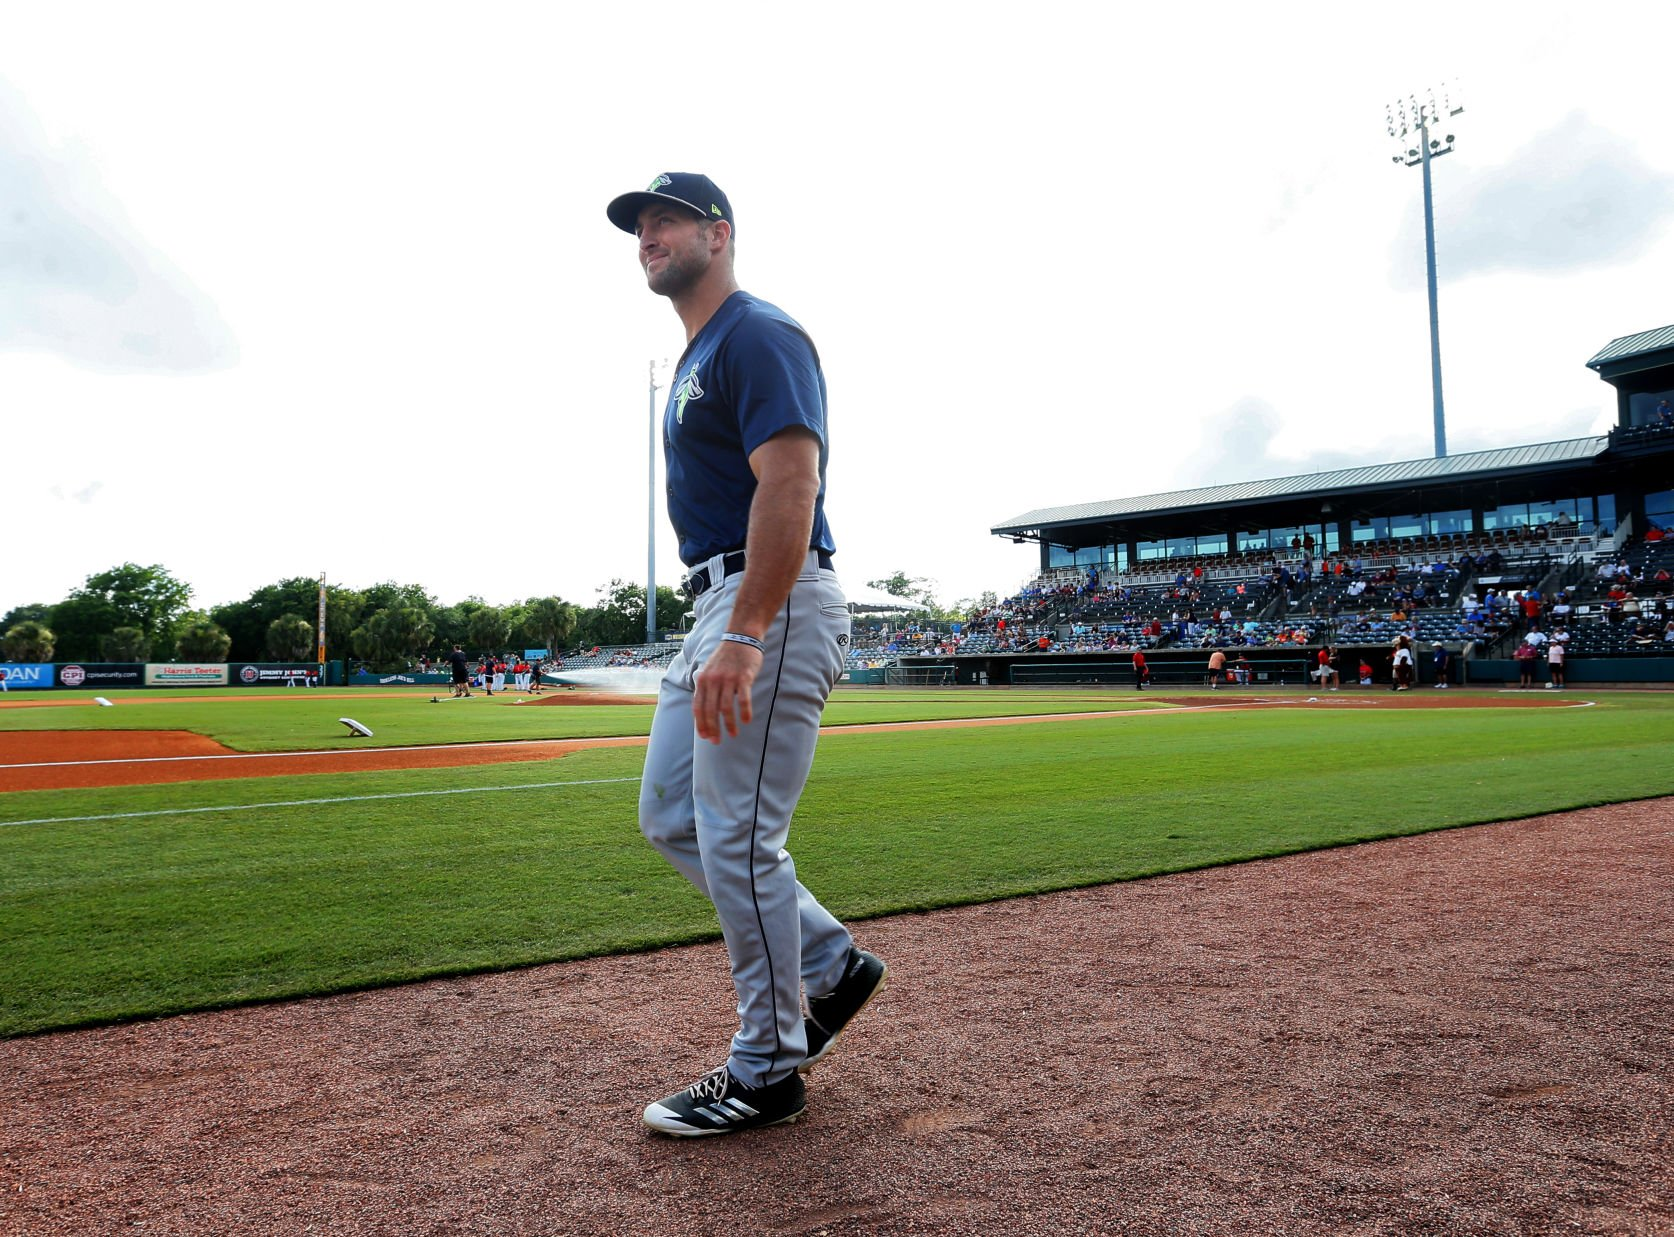 Tim Tebow mercilessly trolled by opposing minor league team